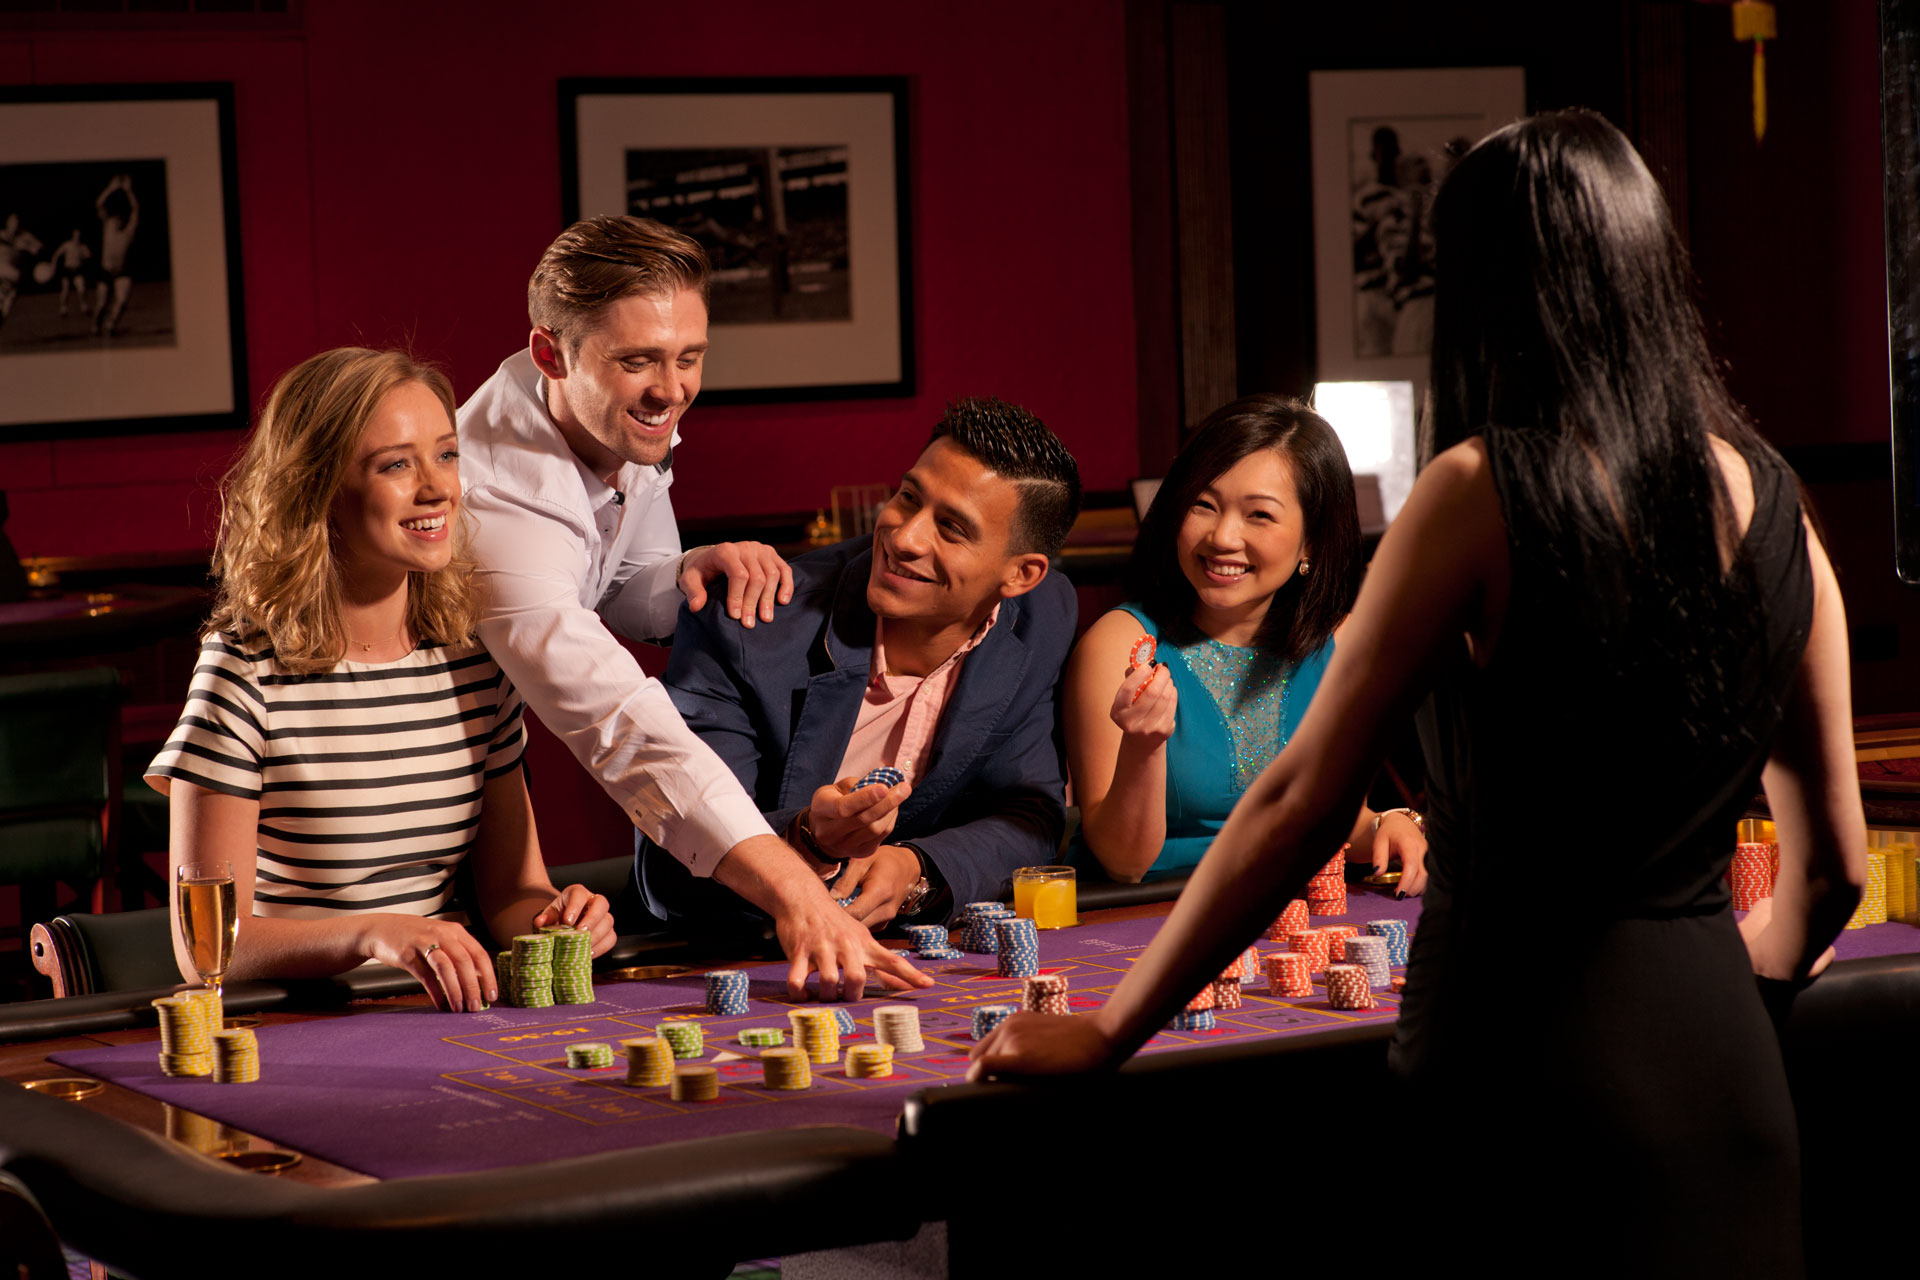 Players having fun at Roulette table